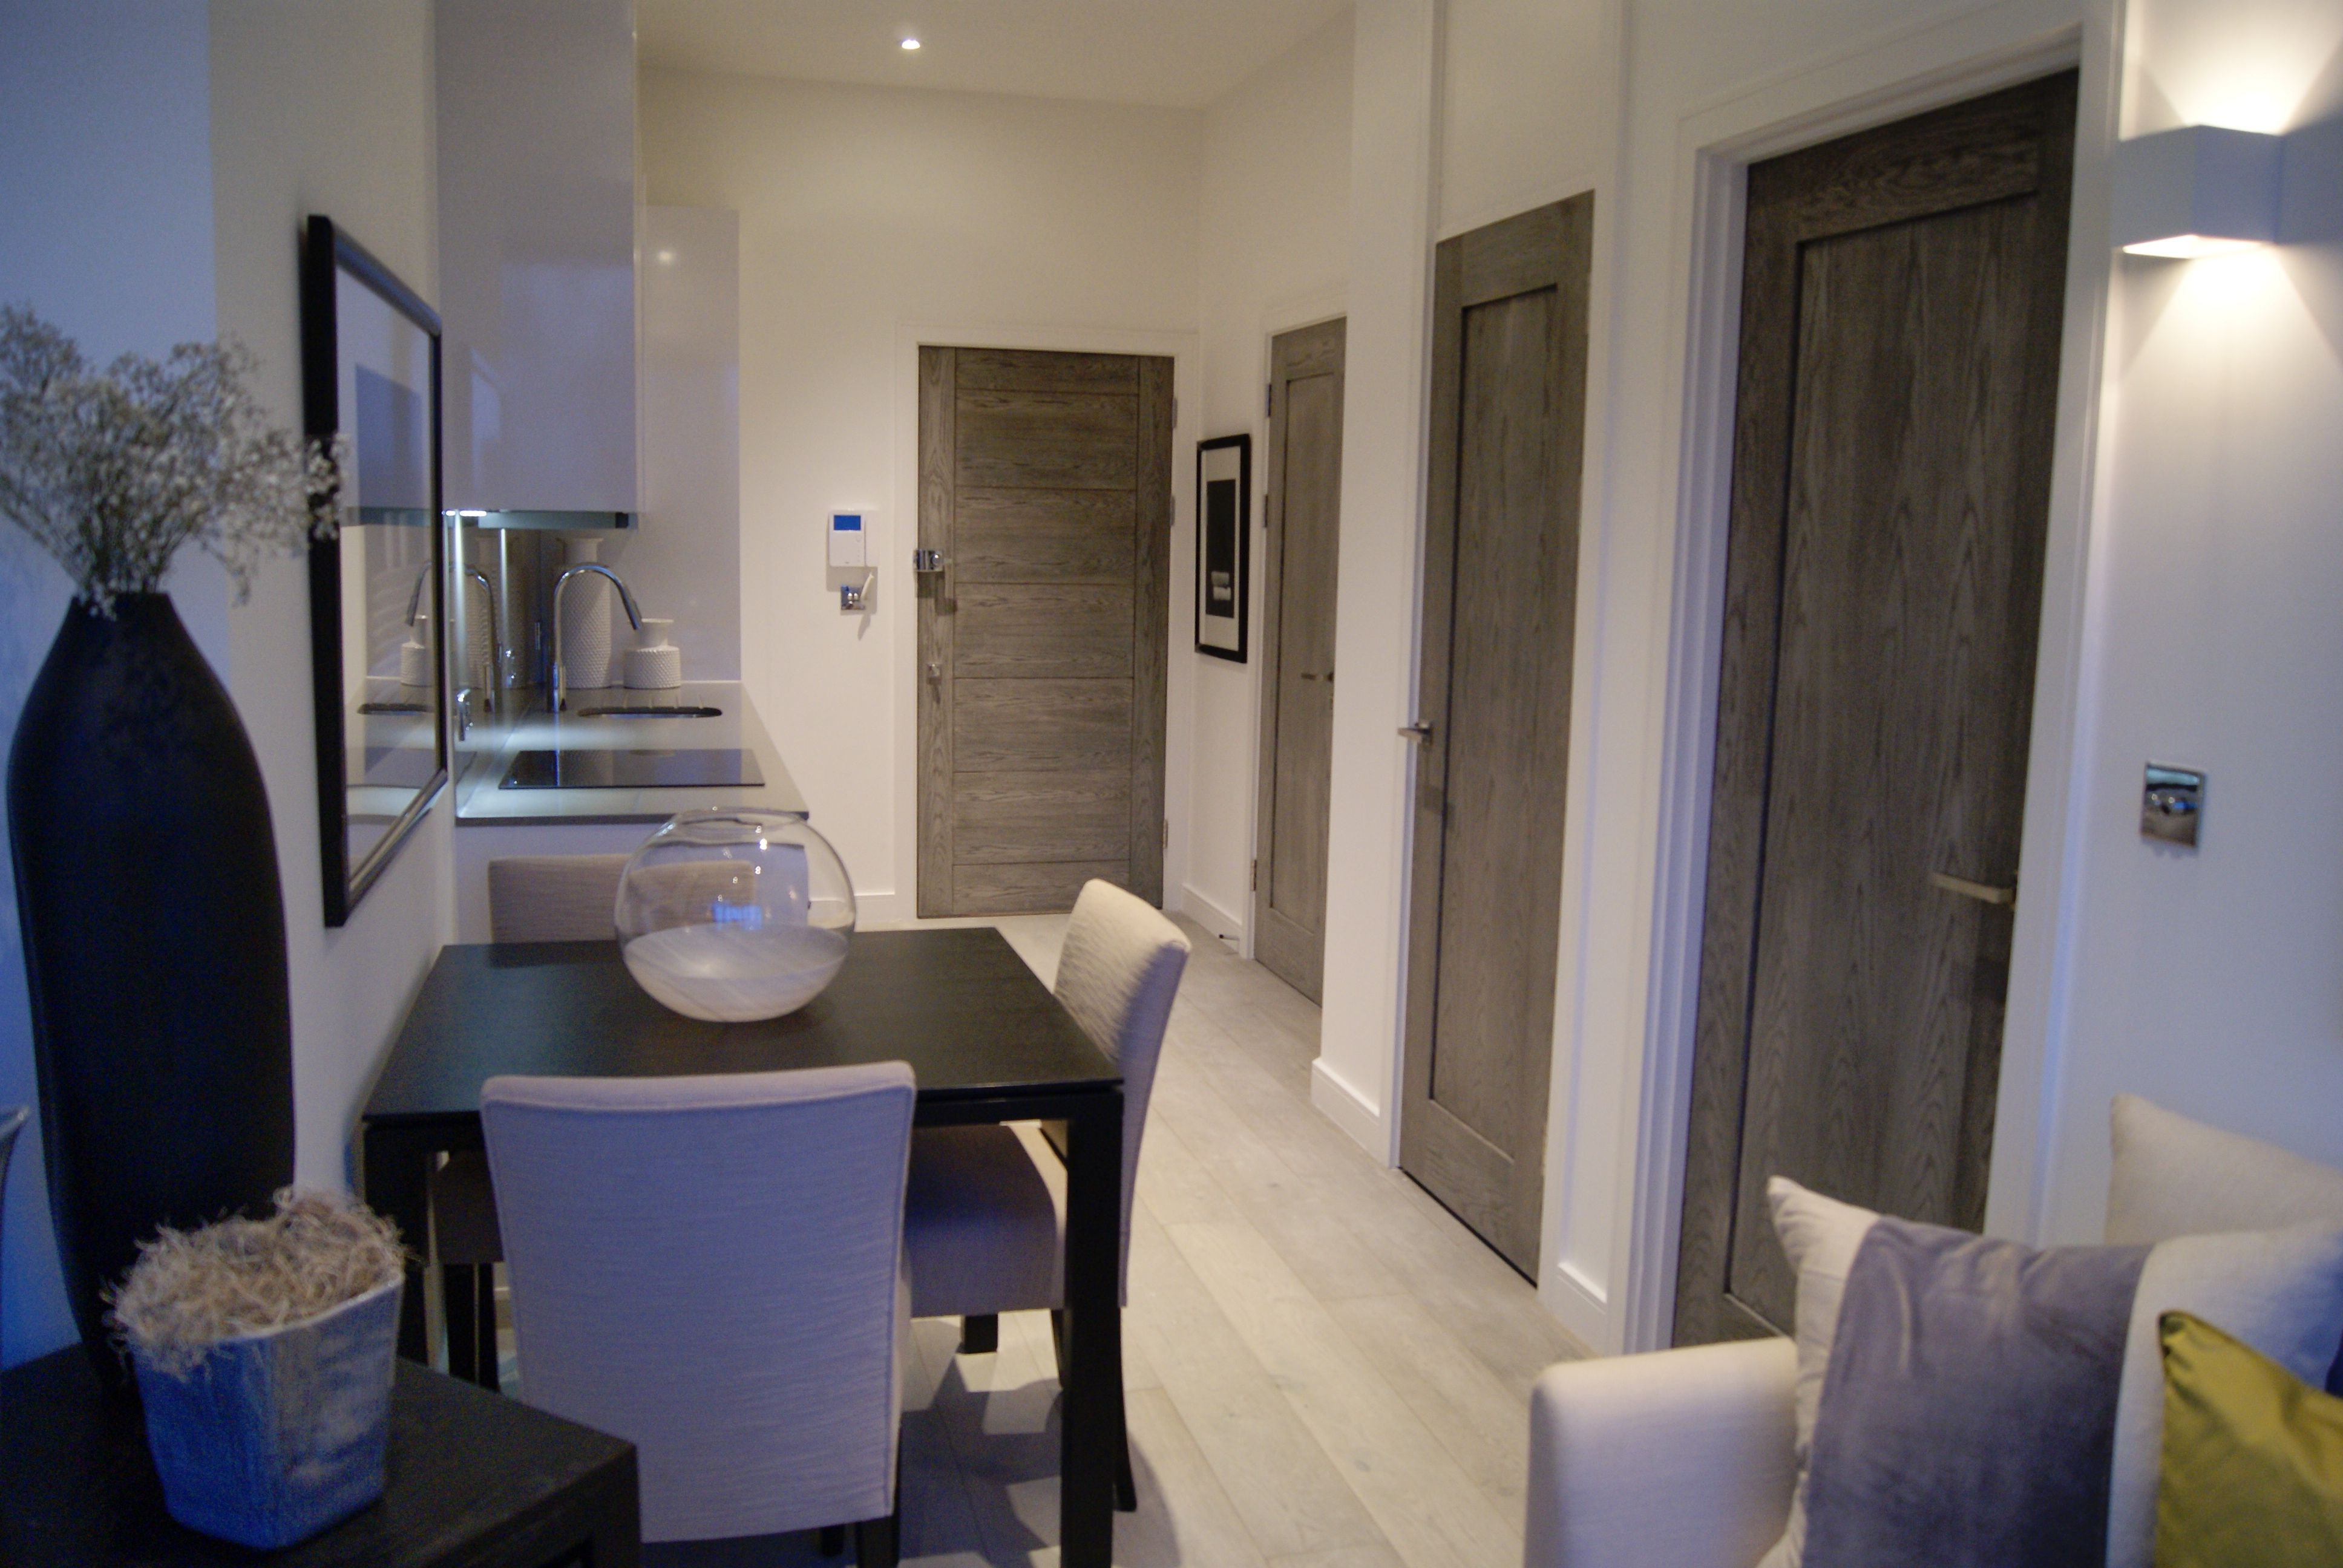 THE VERONA APARTMENTS SLOUGH BY KELLY HOPPEN Oak 190mmW And 830 Doors Throughout The Luxury Apartment Building With Interiors Designed By Kelly Hoppen